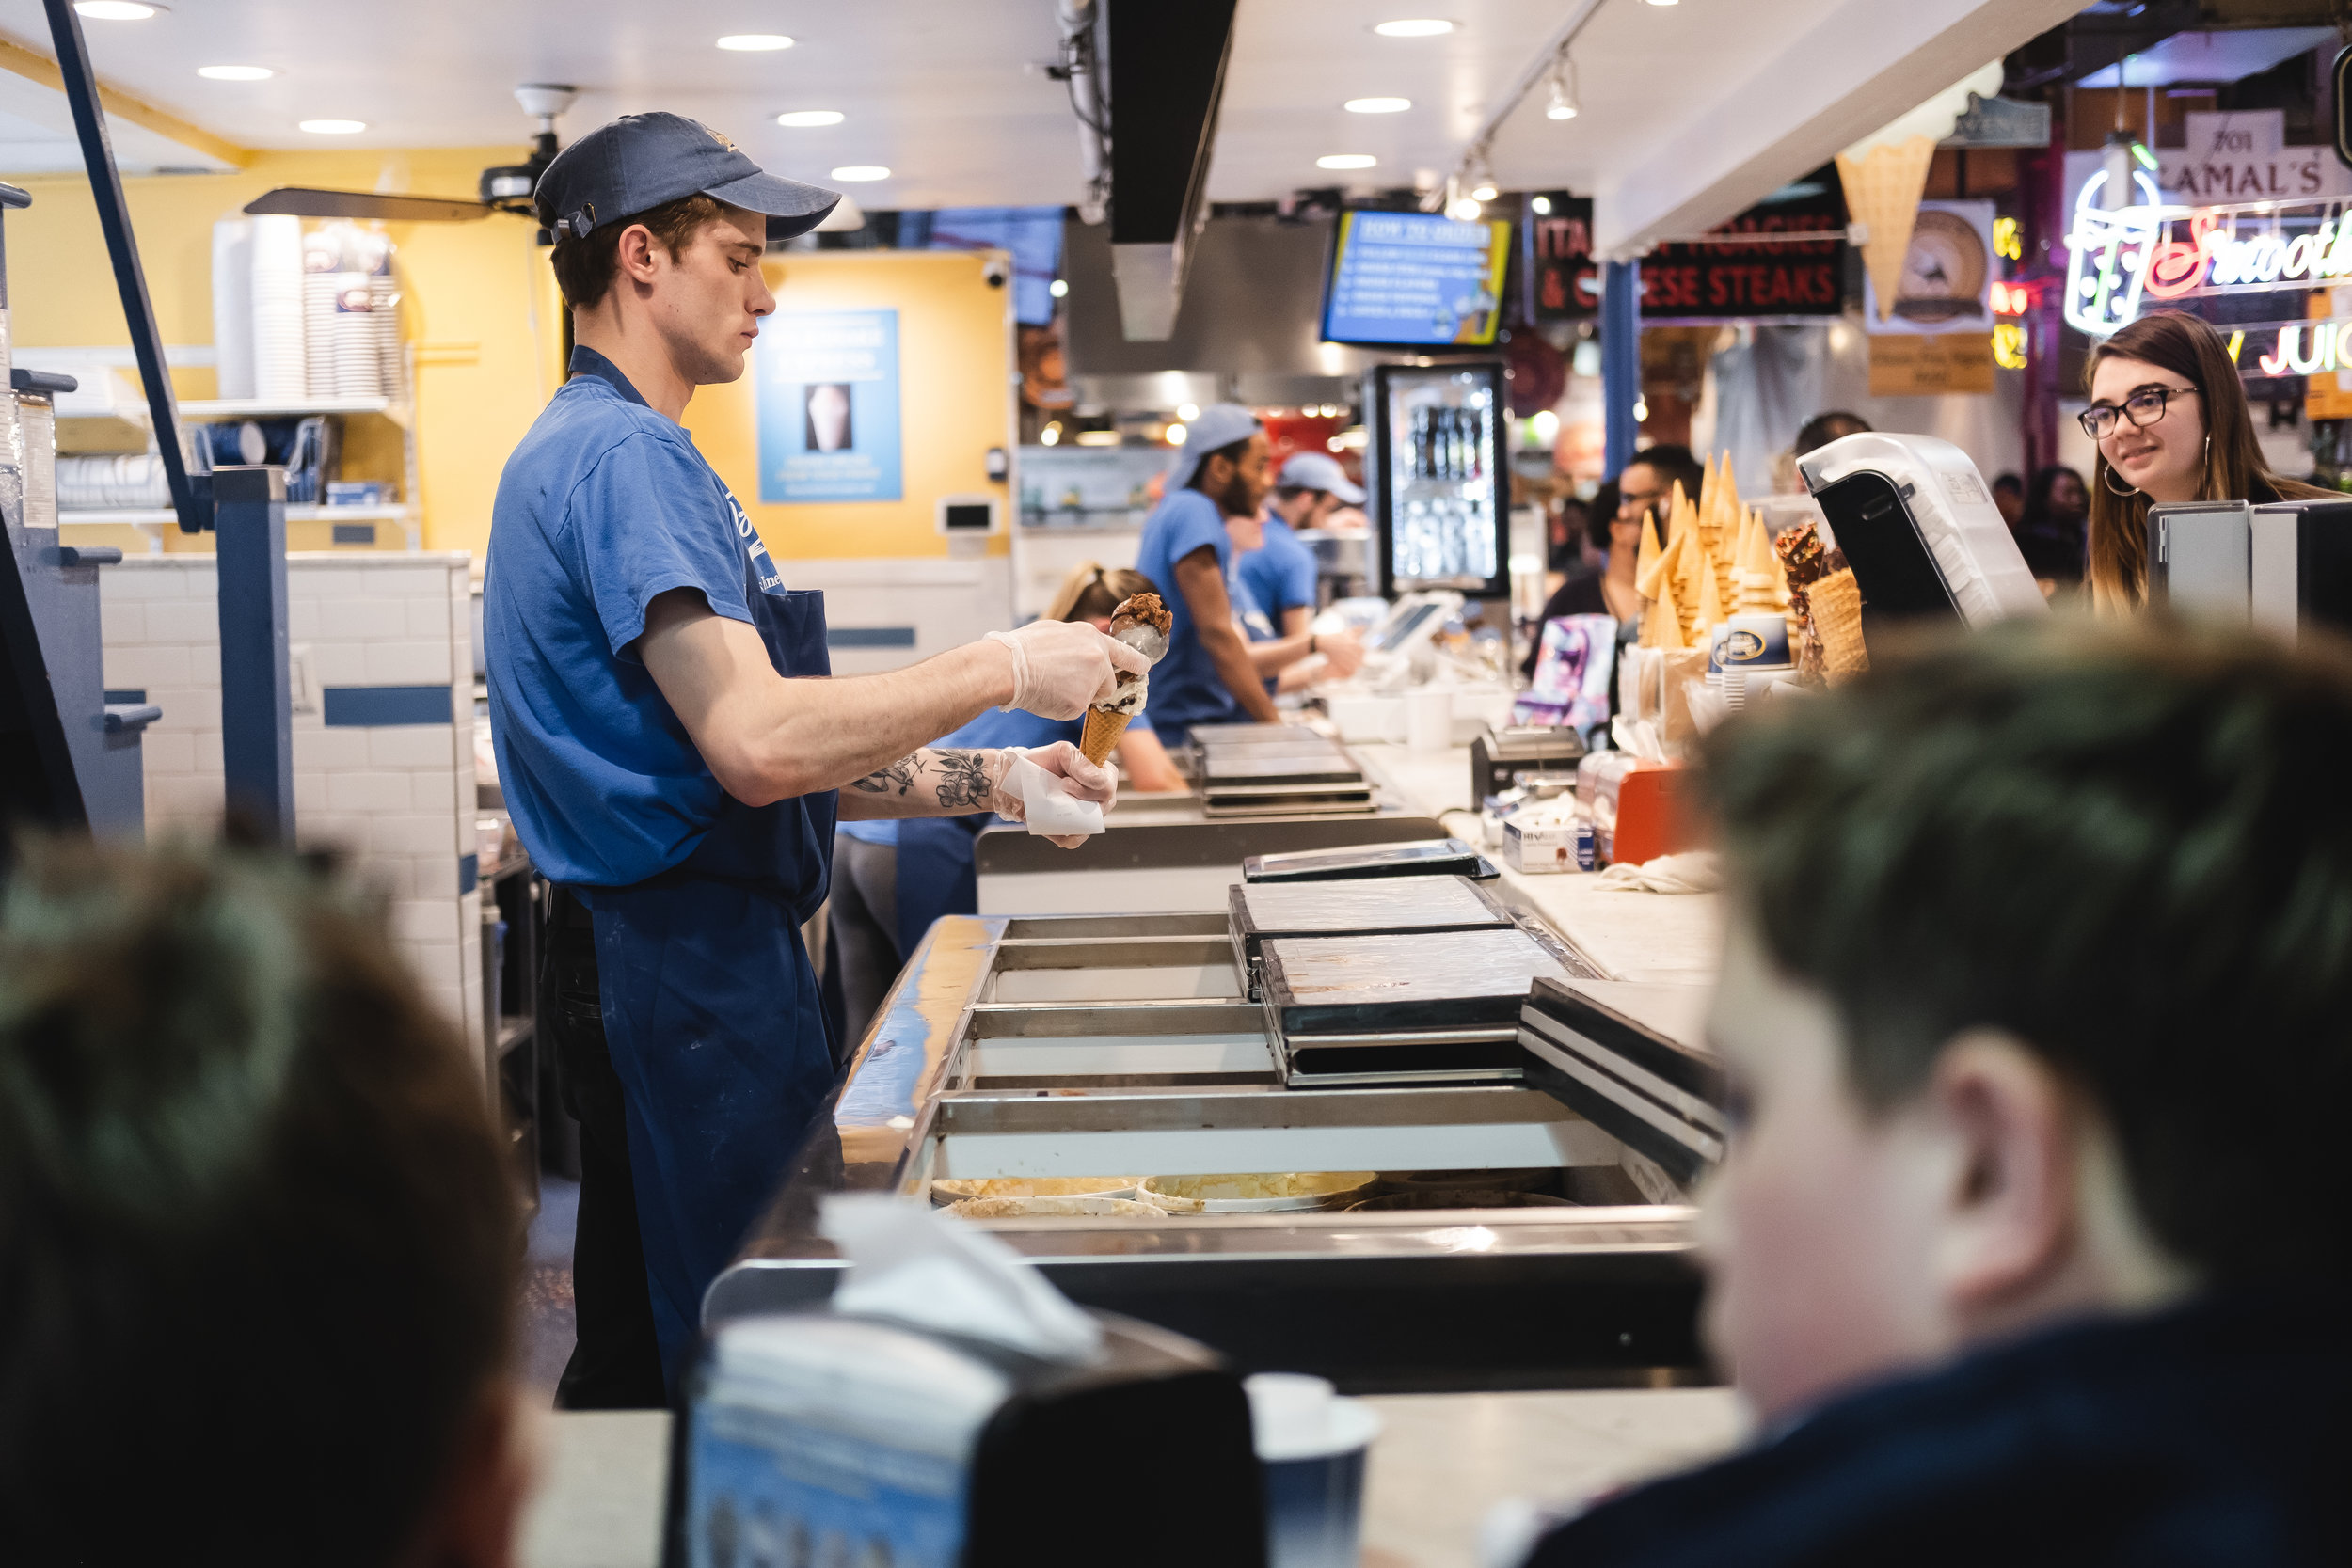 2019_READING TERMINAL MARKET_FOOD_THE PHILLY CHECKLIST-13.jpg